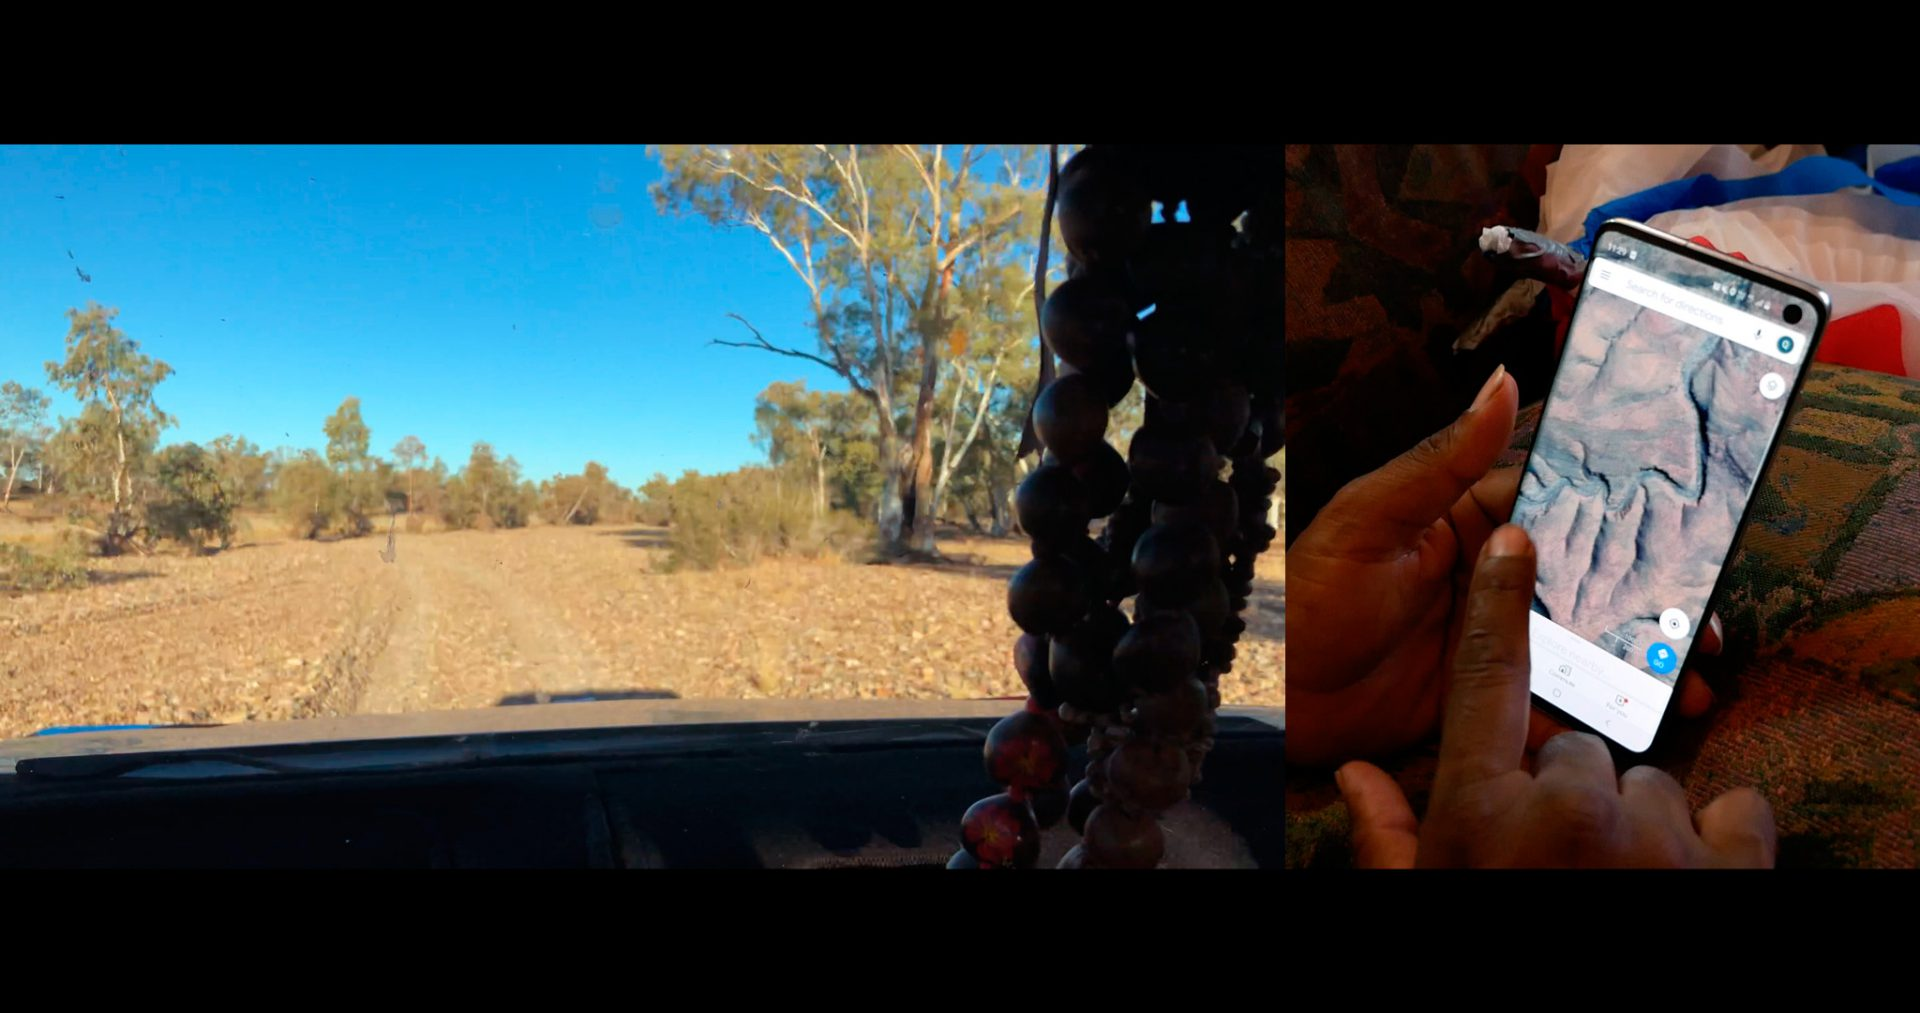 A horizontal image and a vertical image are laid out together. On the left, the horizontal image depicts an arid desert landscape from the perspective of a car dash. In the foreground, chunky beads hang from the rearview mirror. In the background are dry mud flats, scrub trees and bushes, and cloudless blue sky. On the right portrait-oriented image, a brown-skinned left hand holds out a smartphone and the right-hand index finger points at an image on the smartphone screen. The smartphone screen depicts a topographical satellite image of a dry landscape with a water-less river bed.